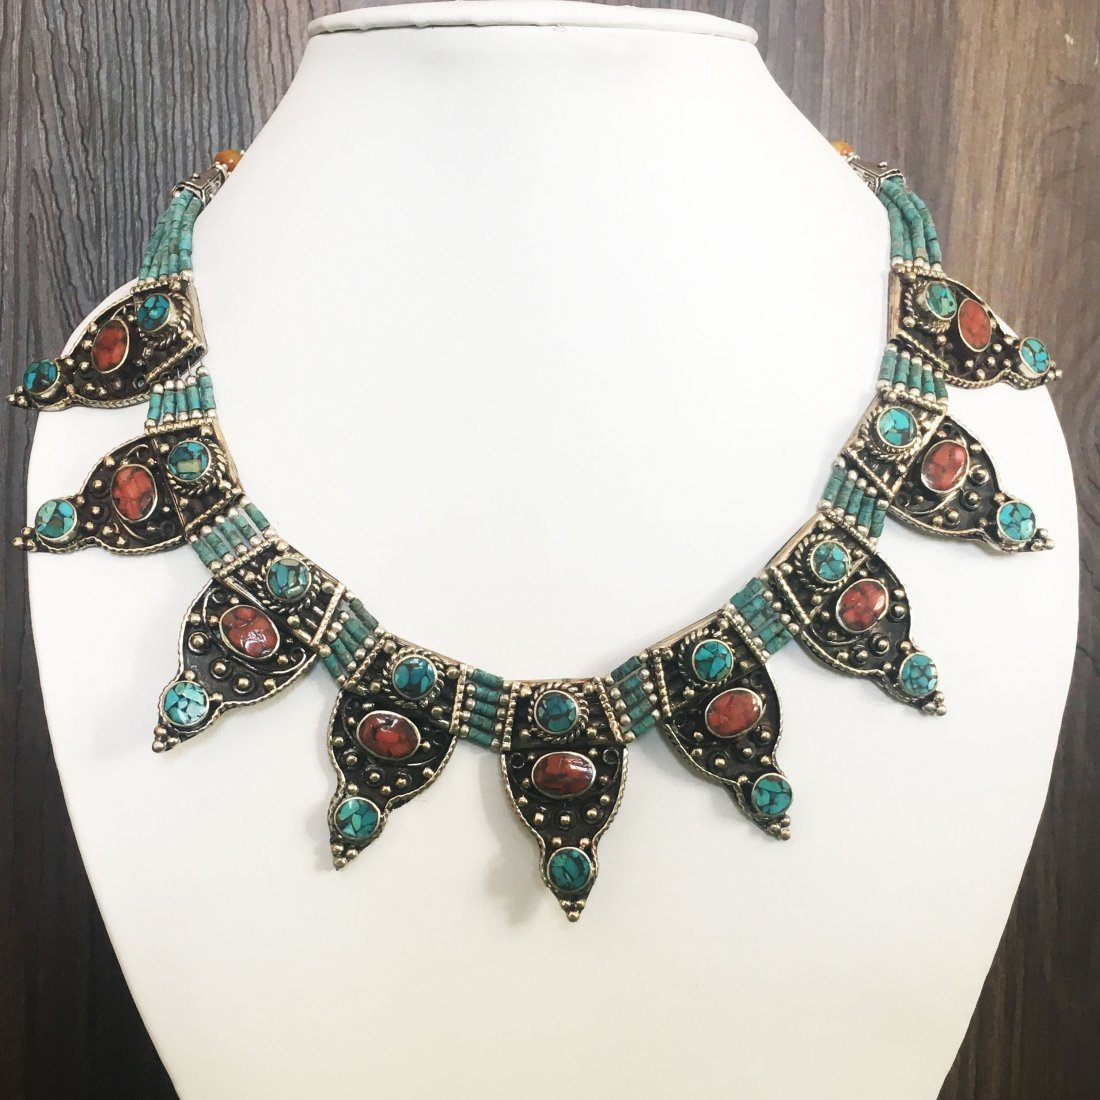 Genuine Turquoise Beads Necklace